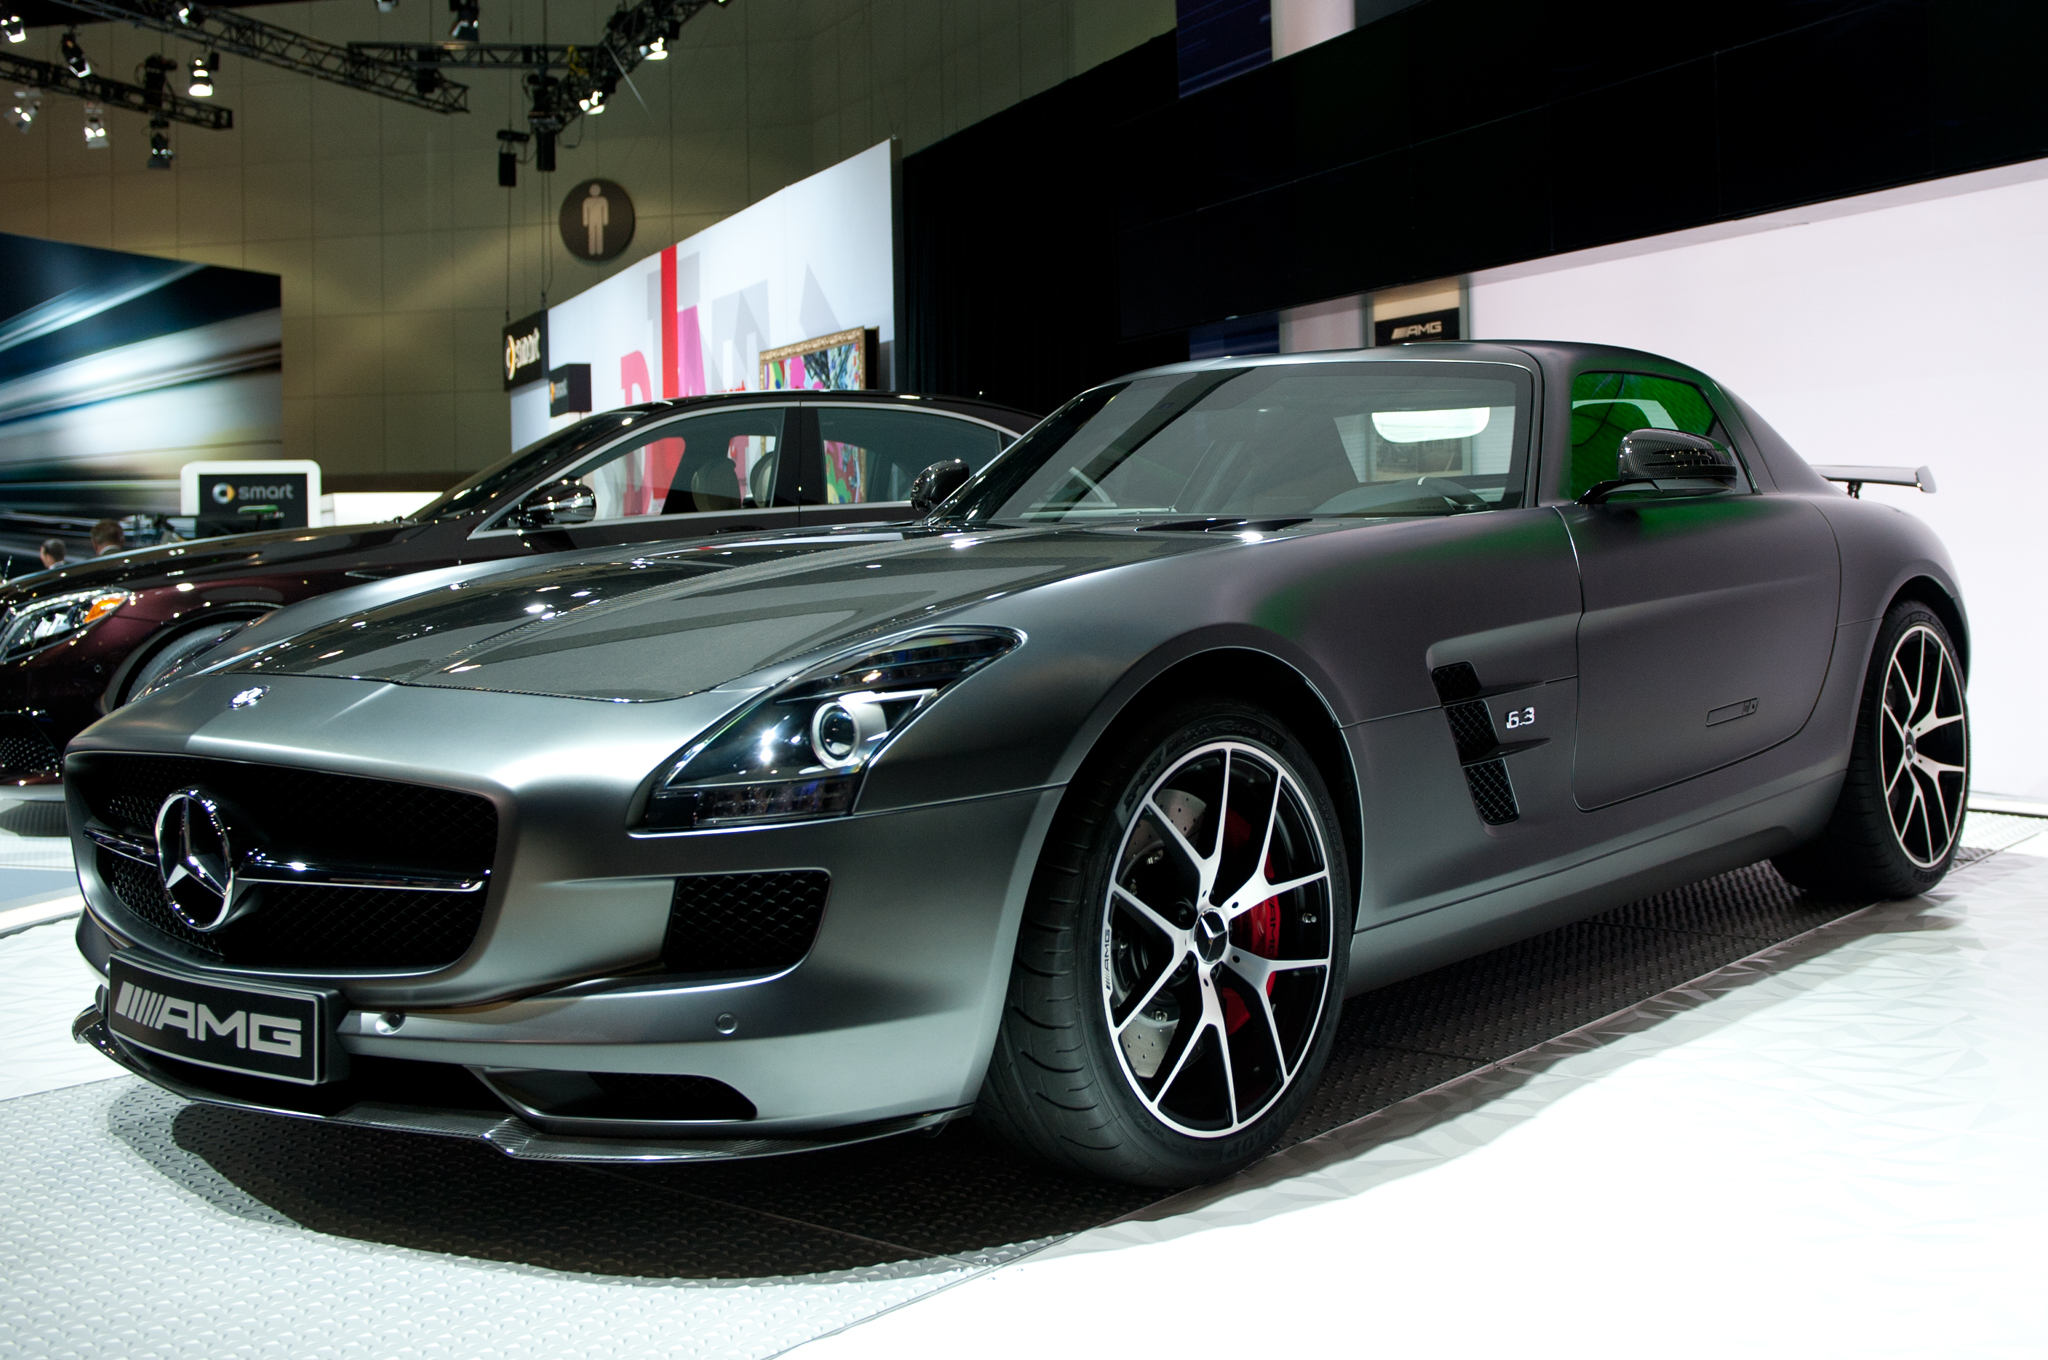 2015 Mercedes-Benz Sls Amg Gt Final Edition #9